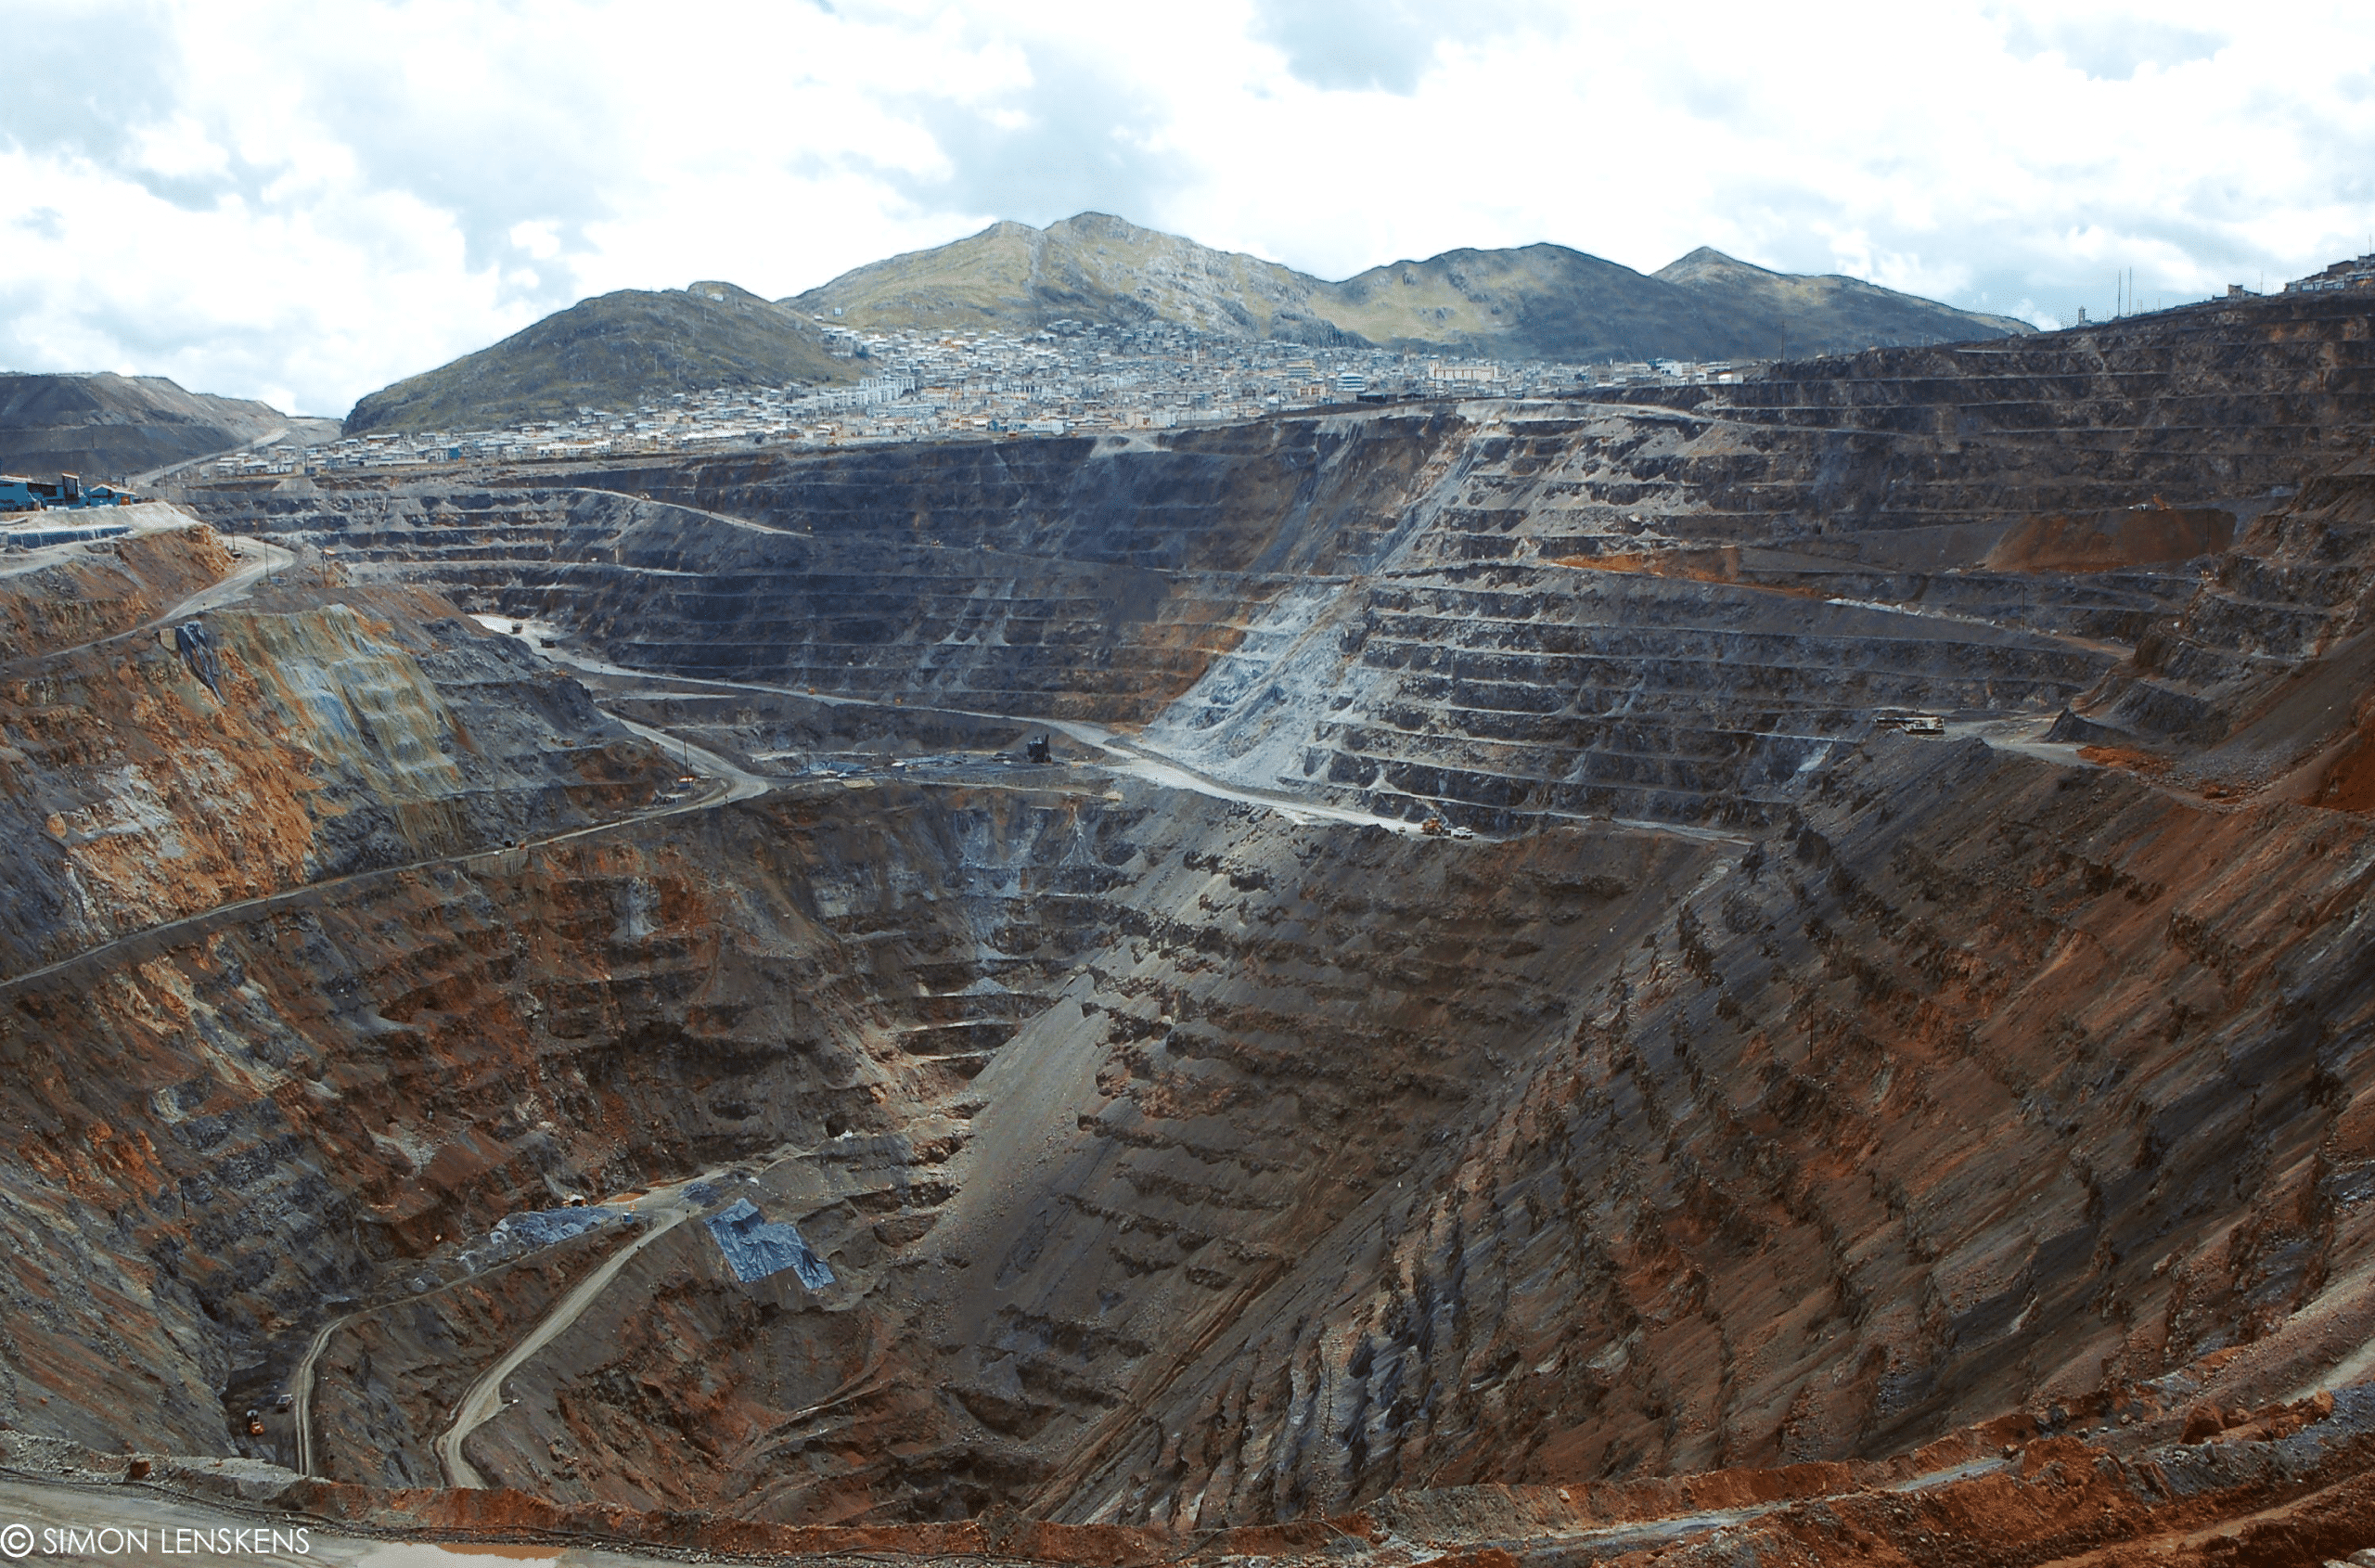 lmage of mineral mining taken from above